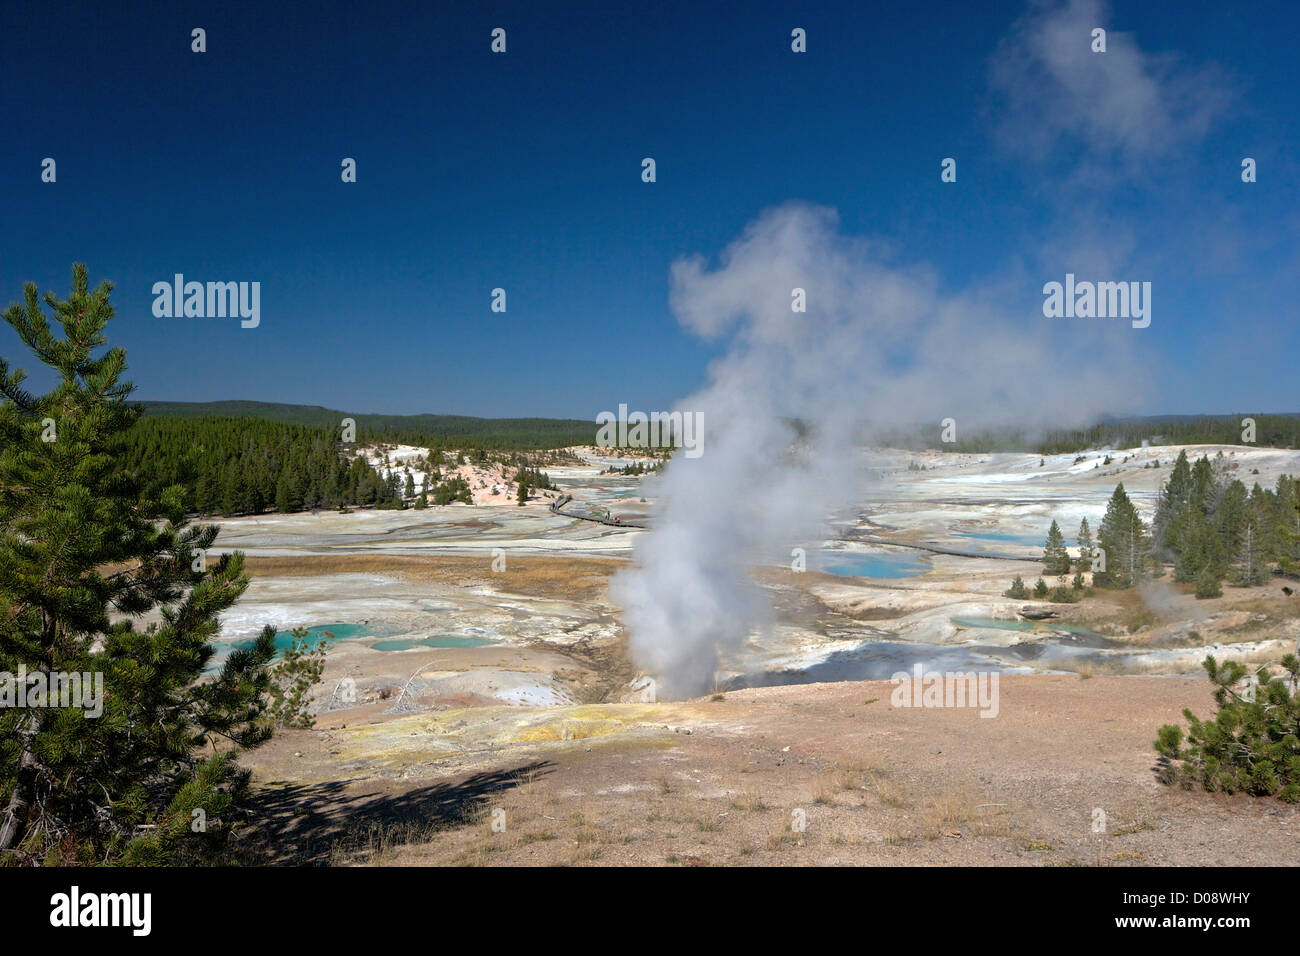 Black Growler Steam Vent in Porcelain Basin, Norris Geyser Basin, Yellowstone National Park, Wyoming, USA - Stock Image